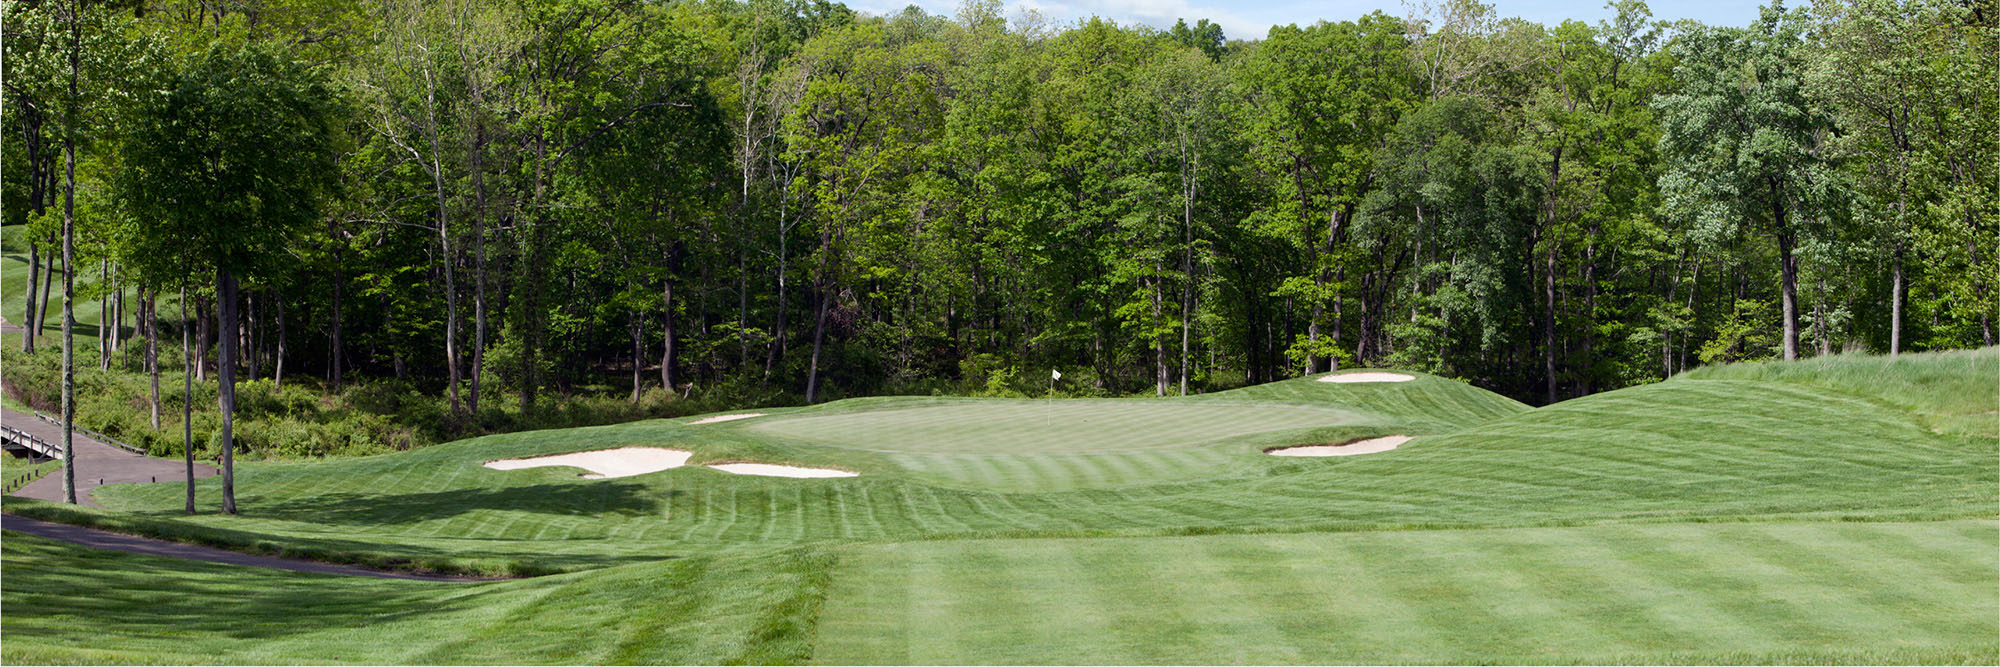 Golf Course Image - New Jersey National Golf Club No. 7